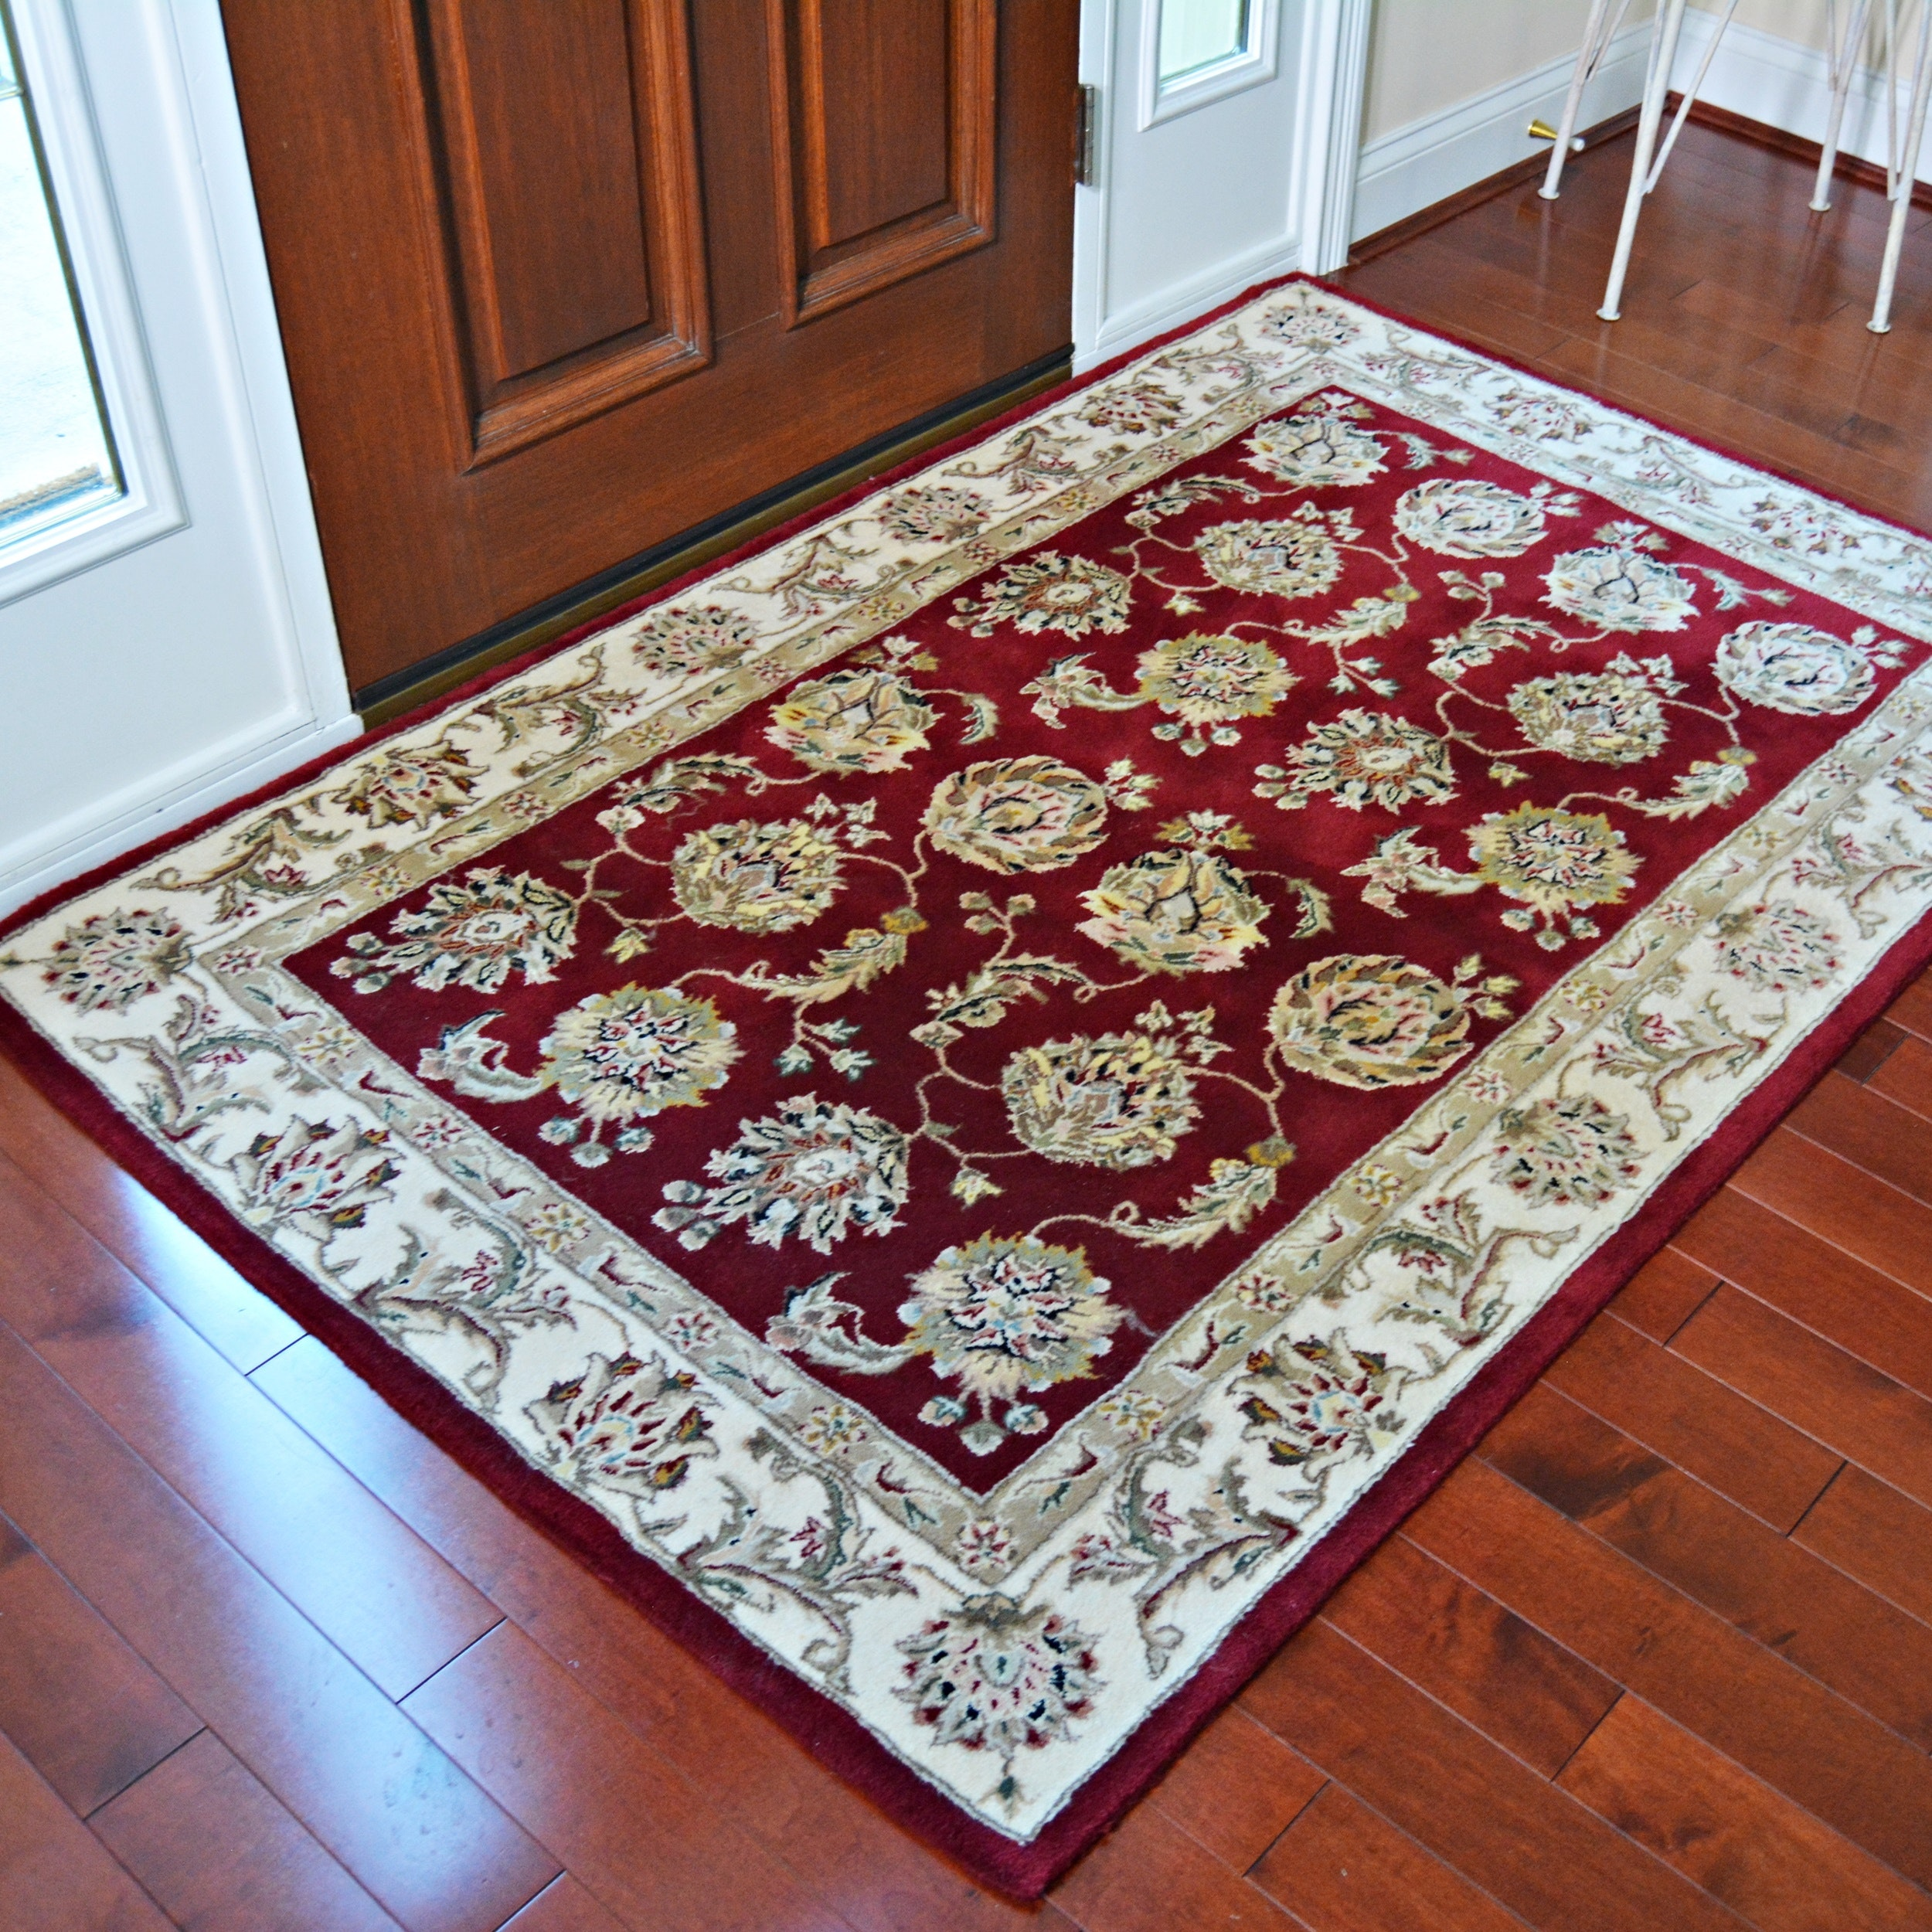 Hand Tufted Wool and Silk Area Rug